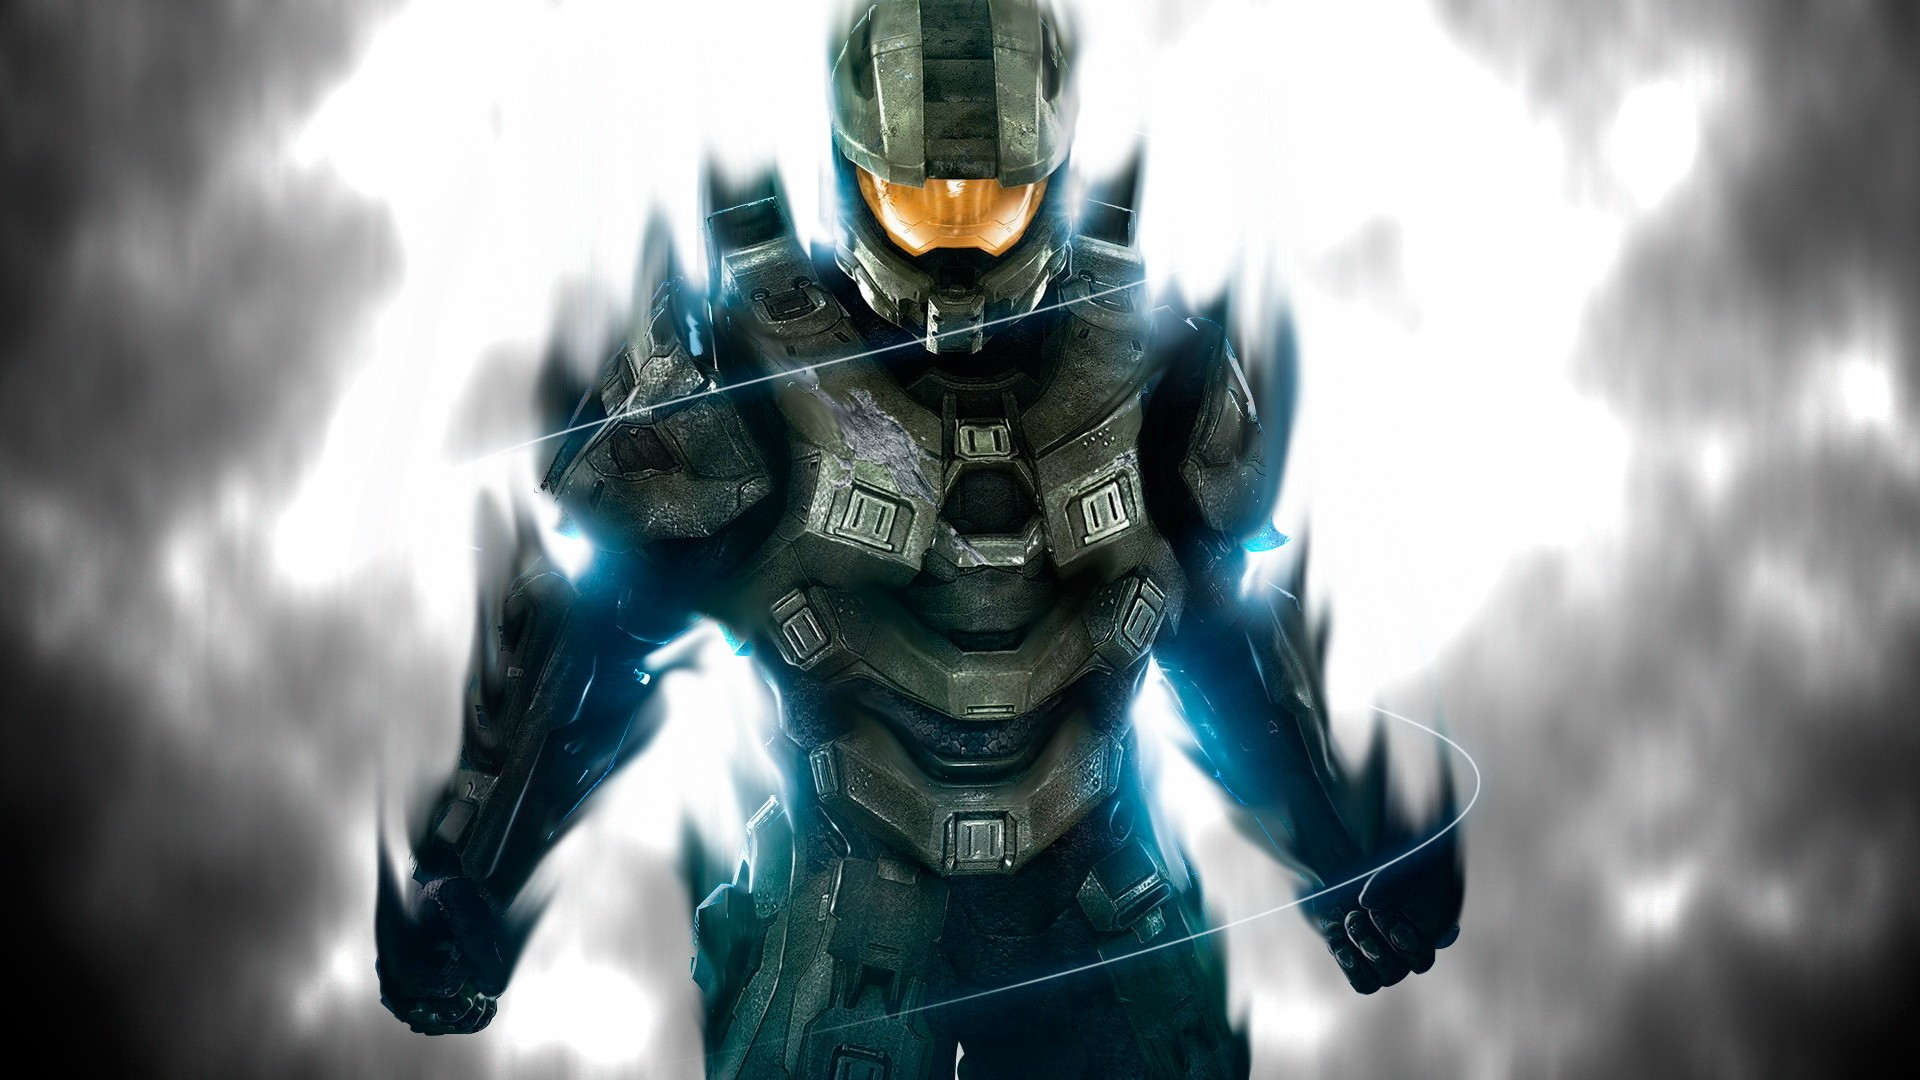 Halo 4 Master Chief Wallpaper Cool Halo Master Chief 1964750